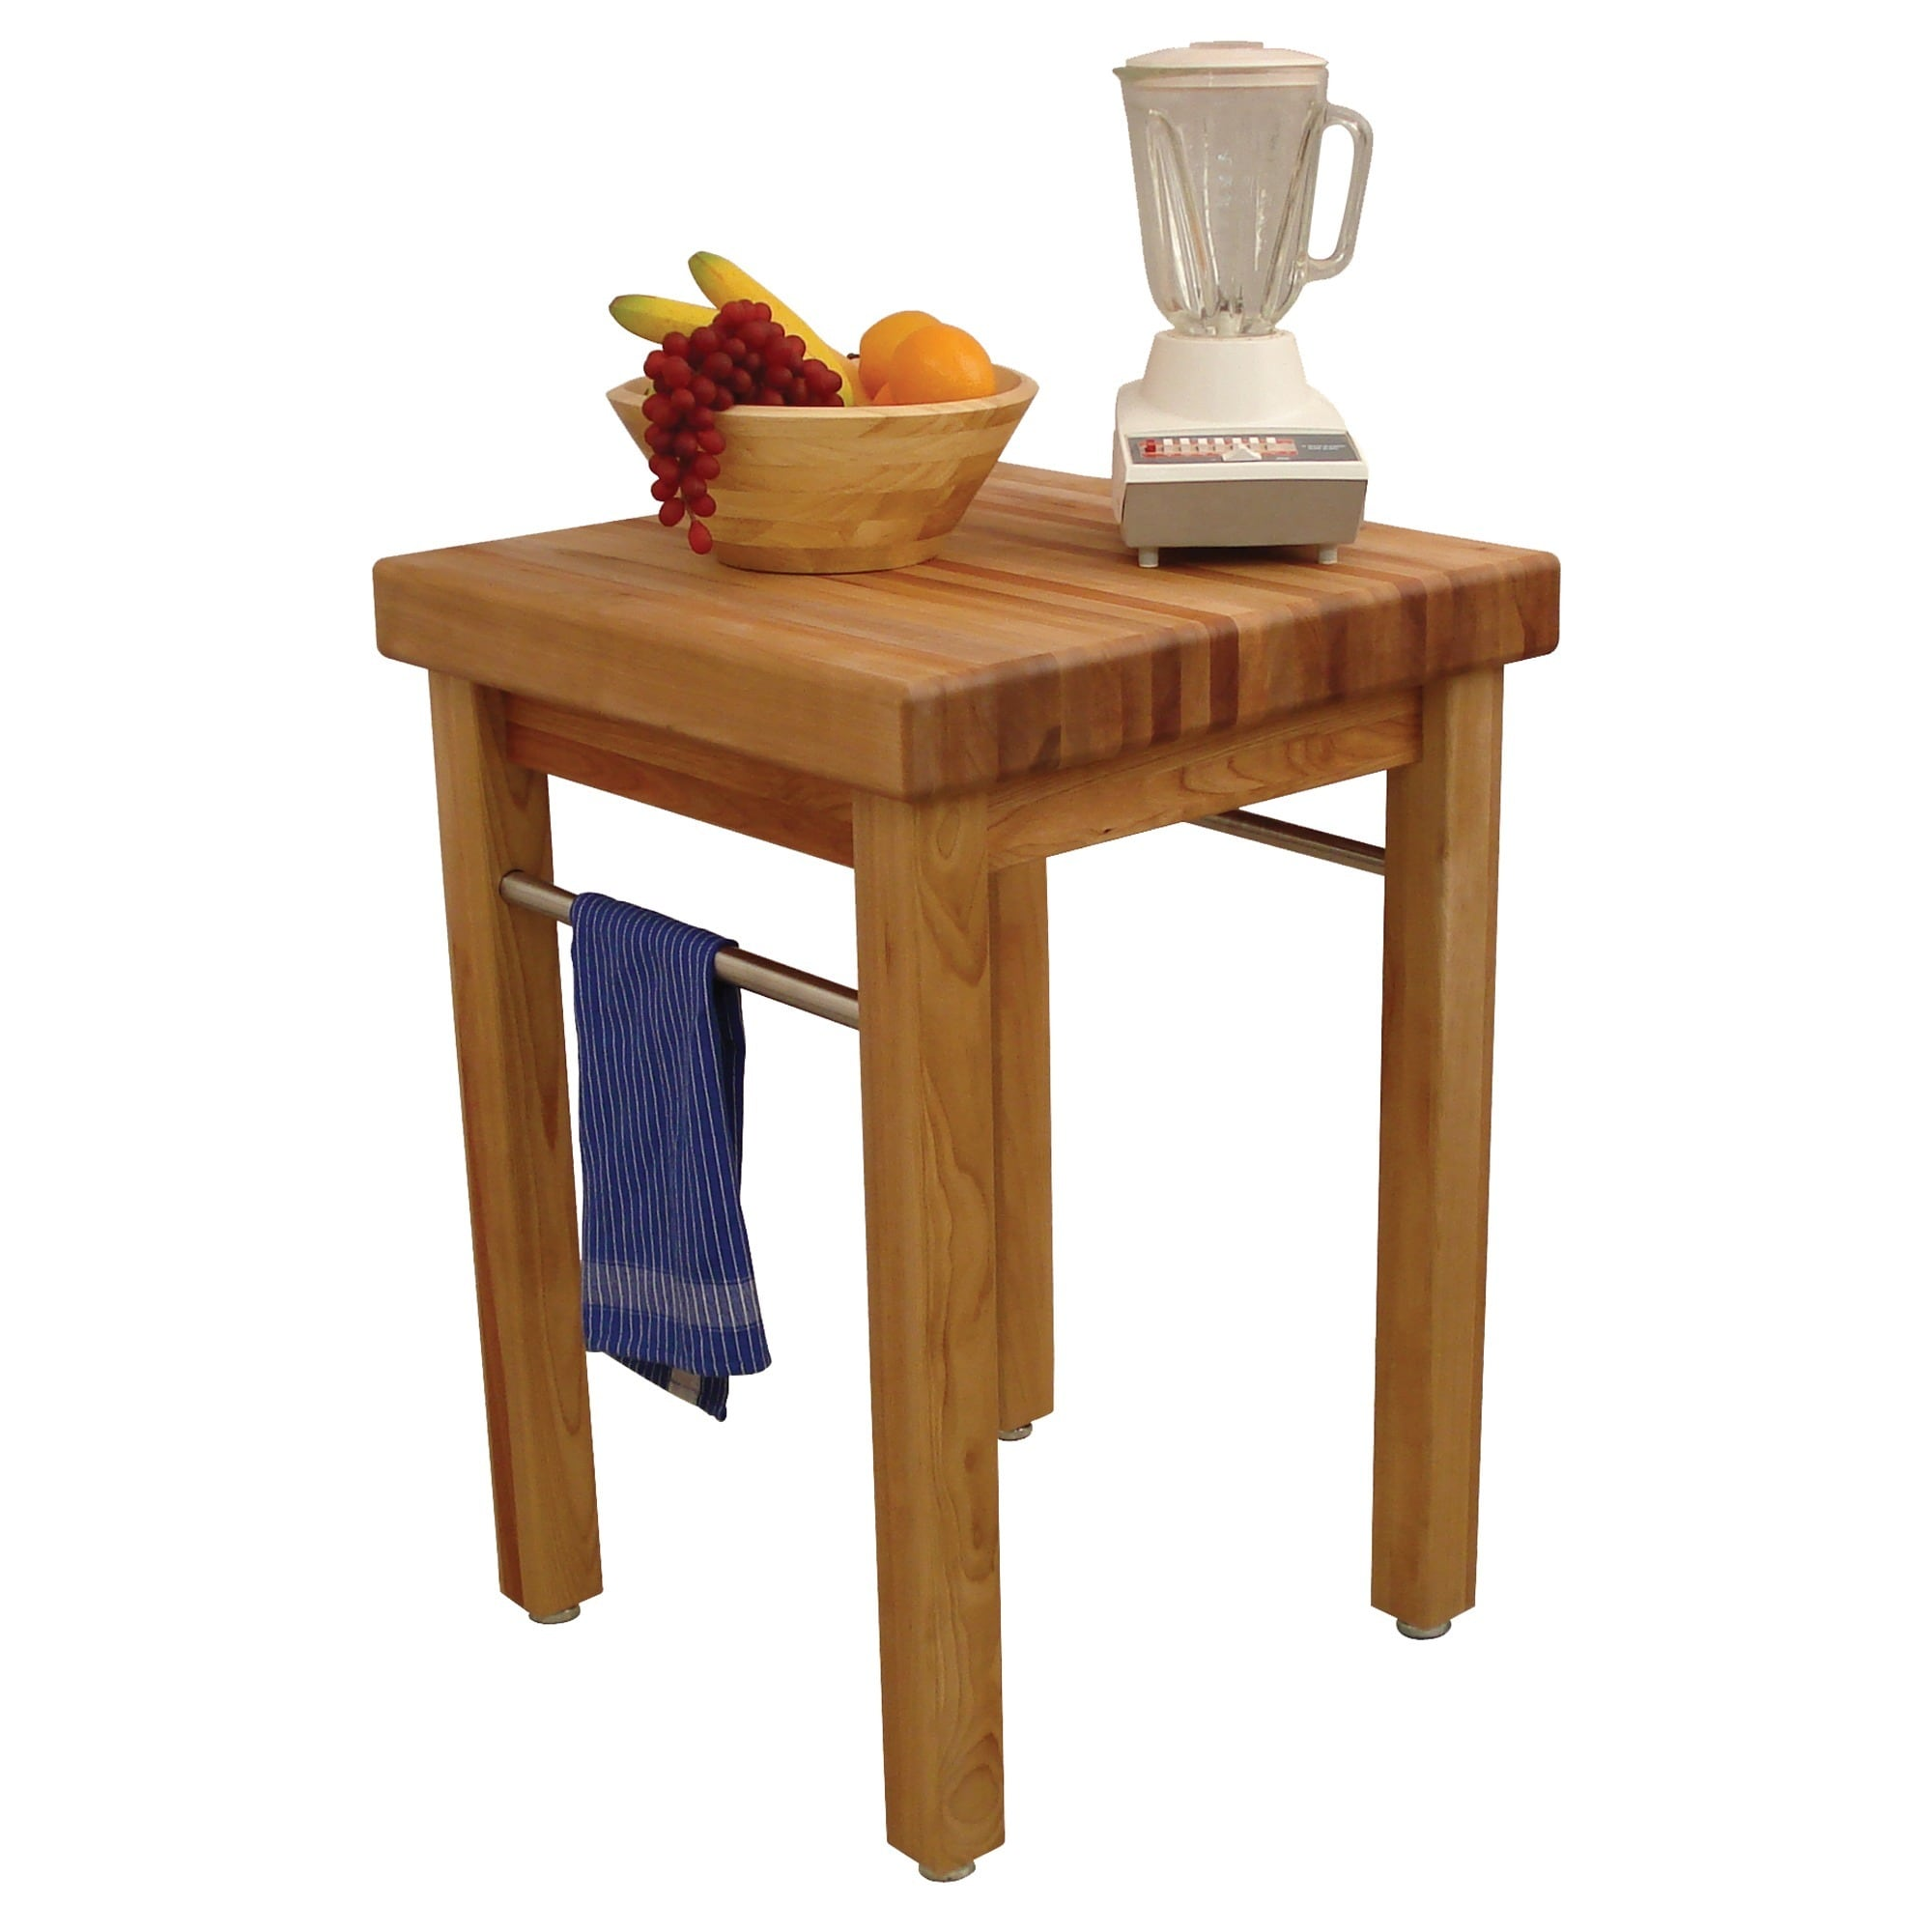 French Country Butcher's Block Table